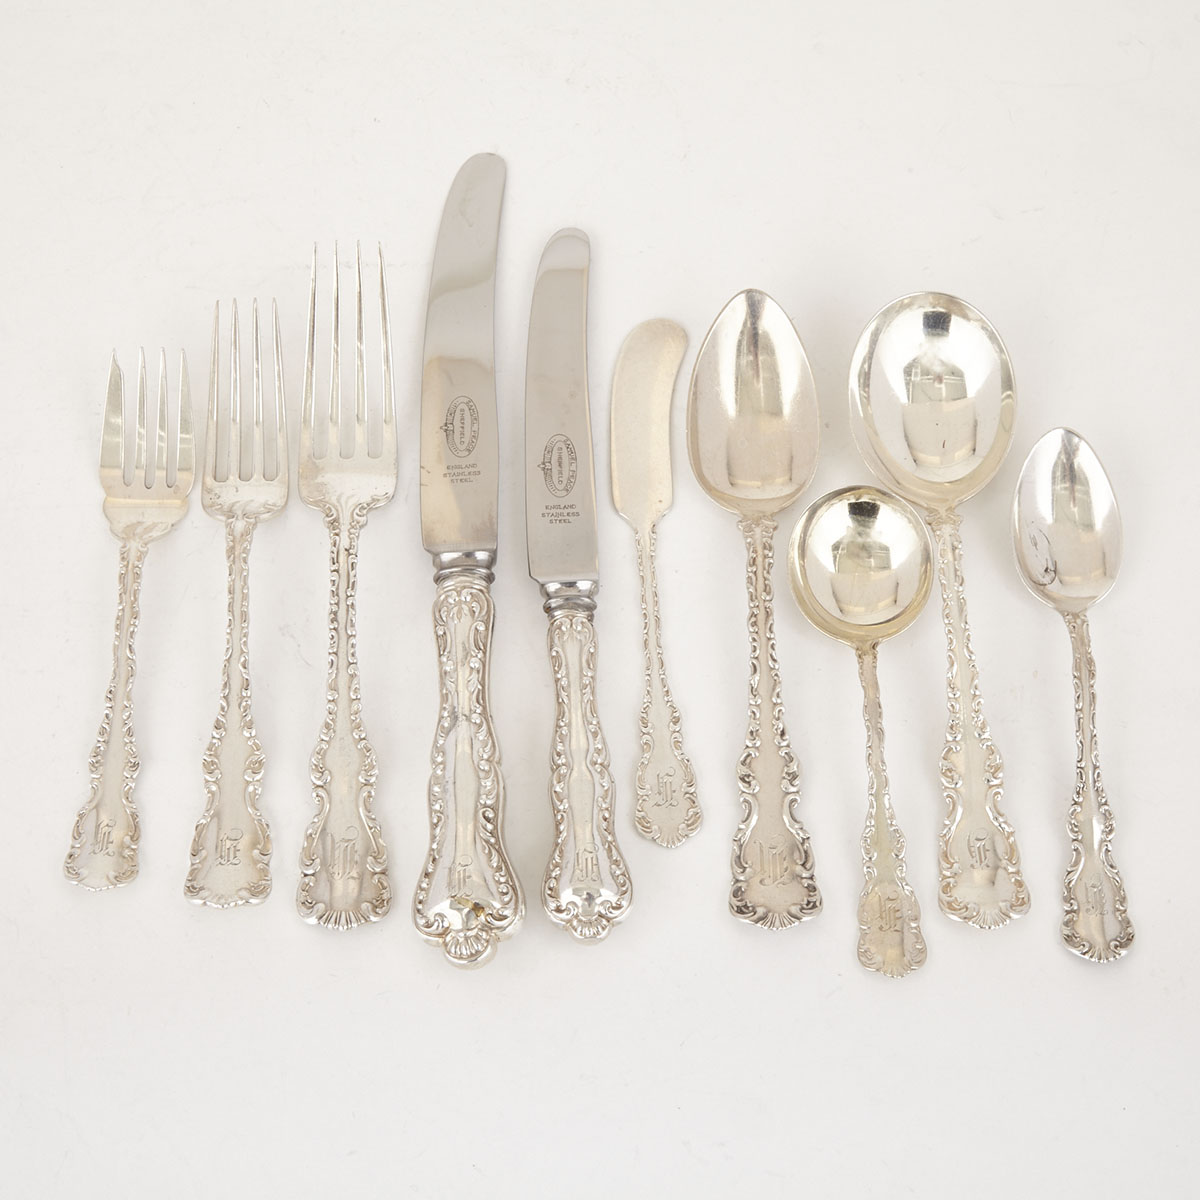 Canadian Silver 'Louis XV' Pattern Flatware Service, Ryrie Bros. and Roden Bros., Toronto, Ont., early 20th century